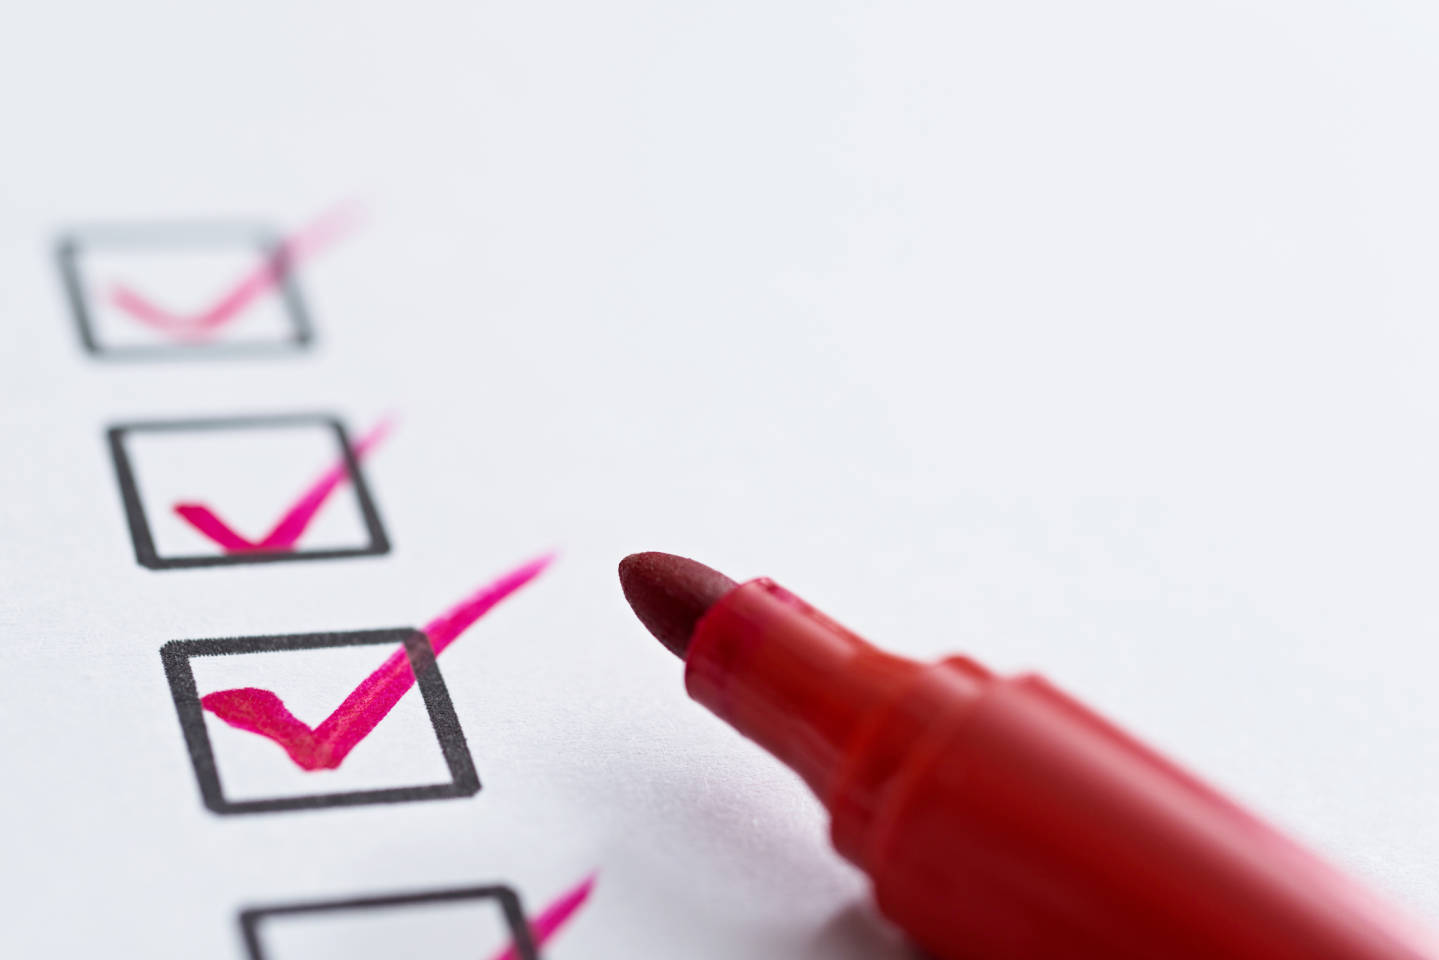 checklist with red pen on white background